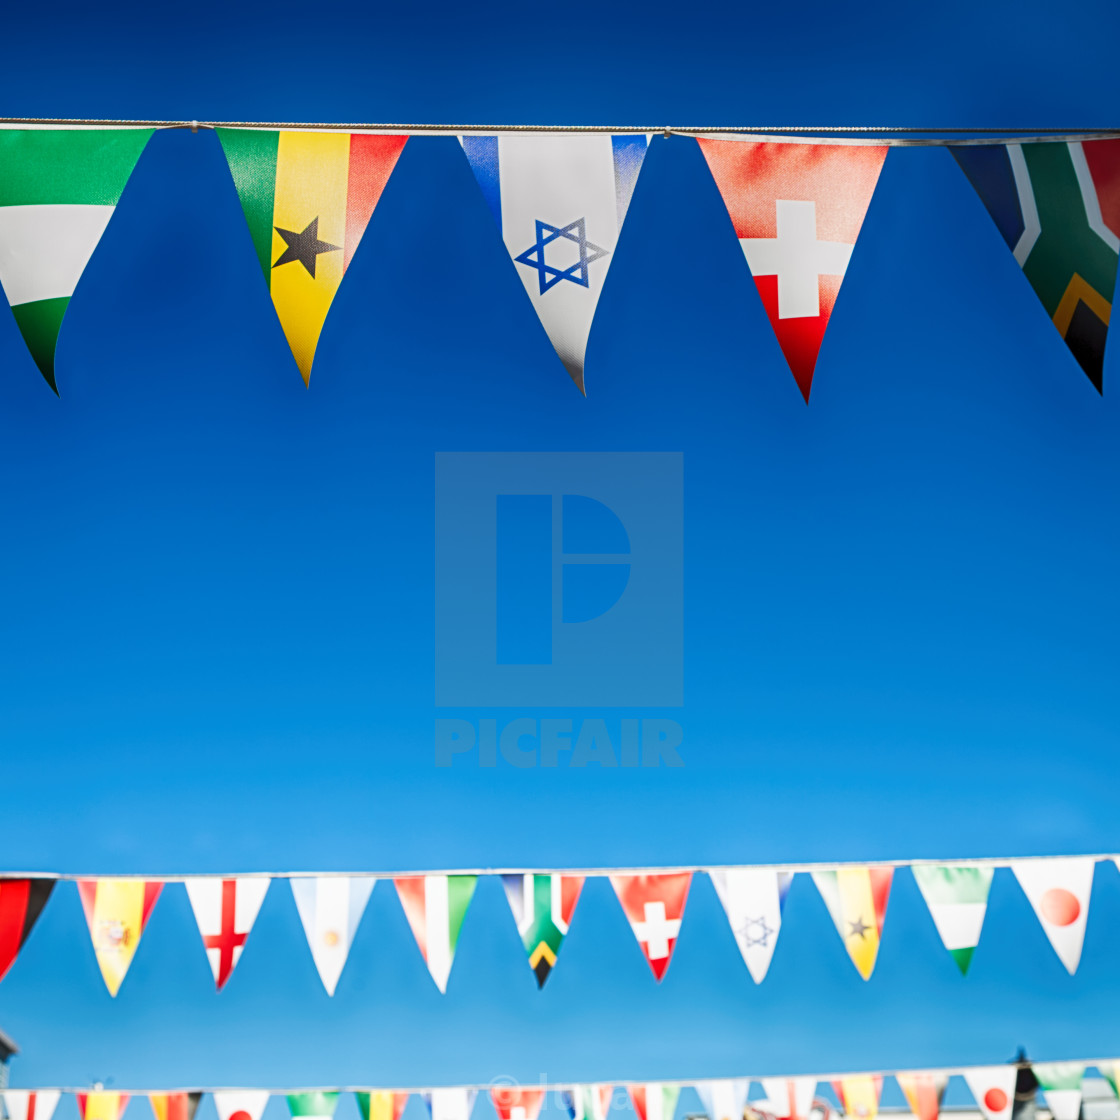 in south africa decorative waving flags - License, download